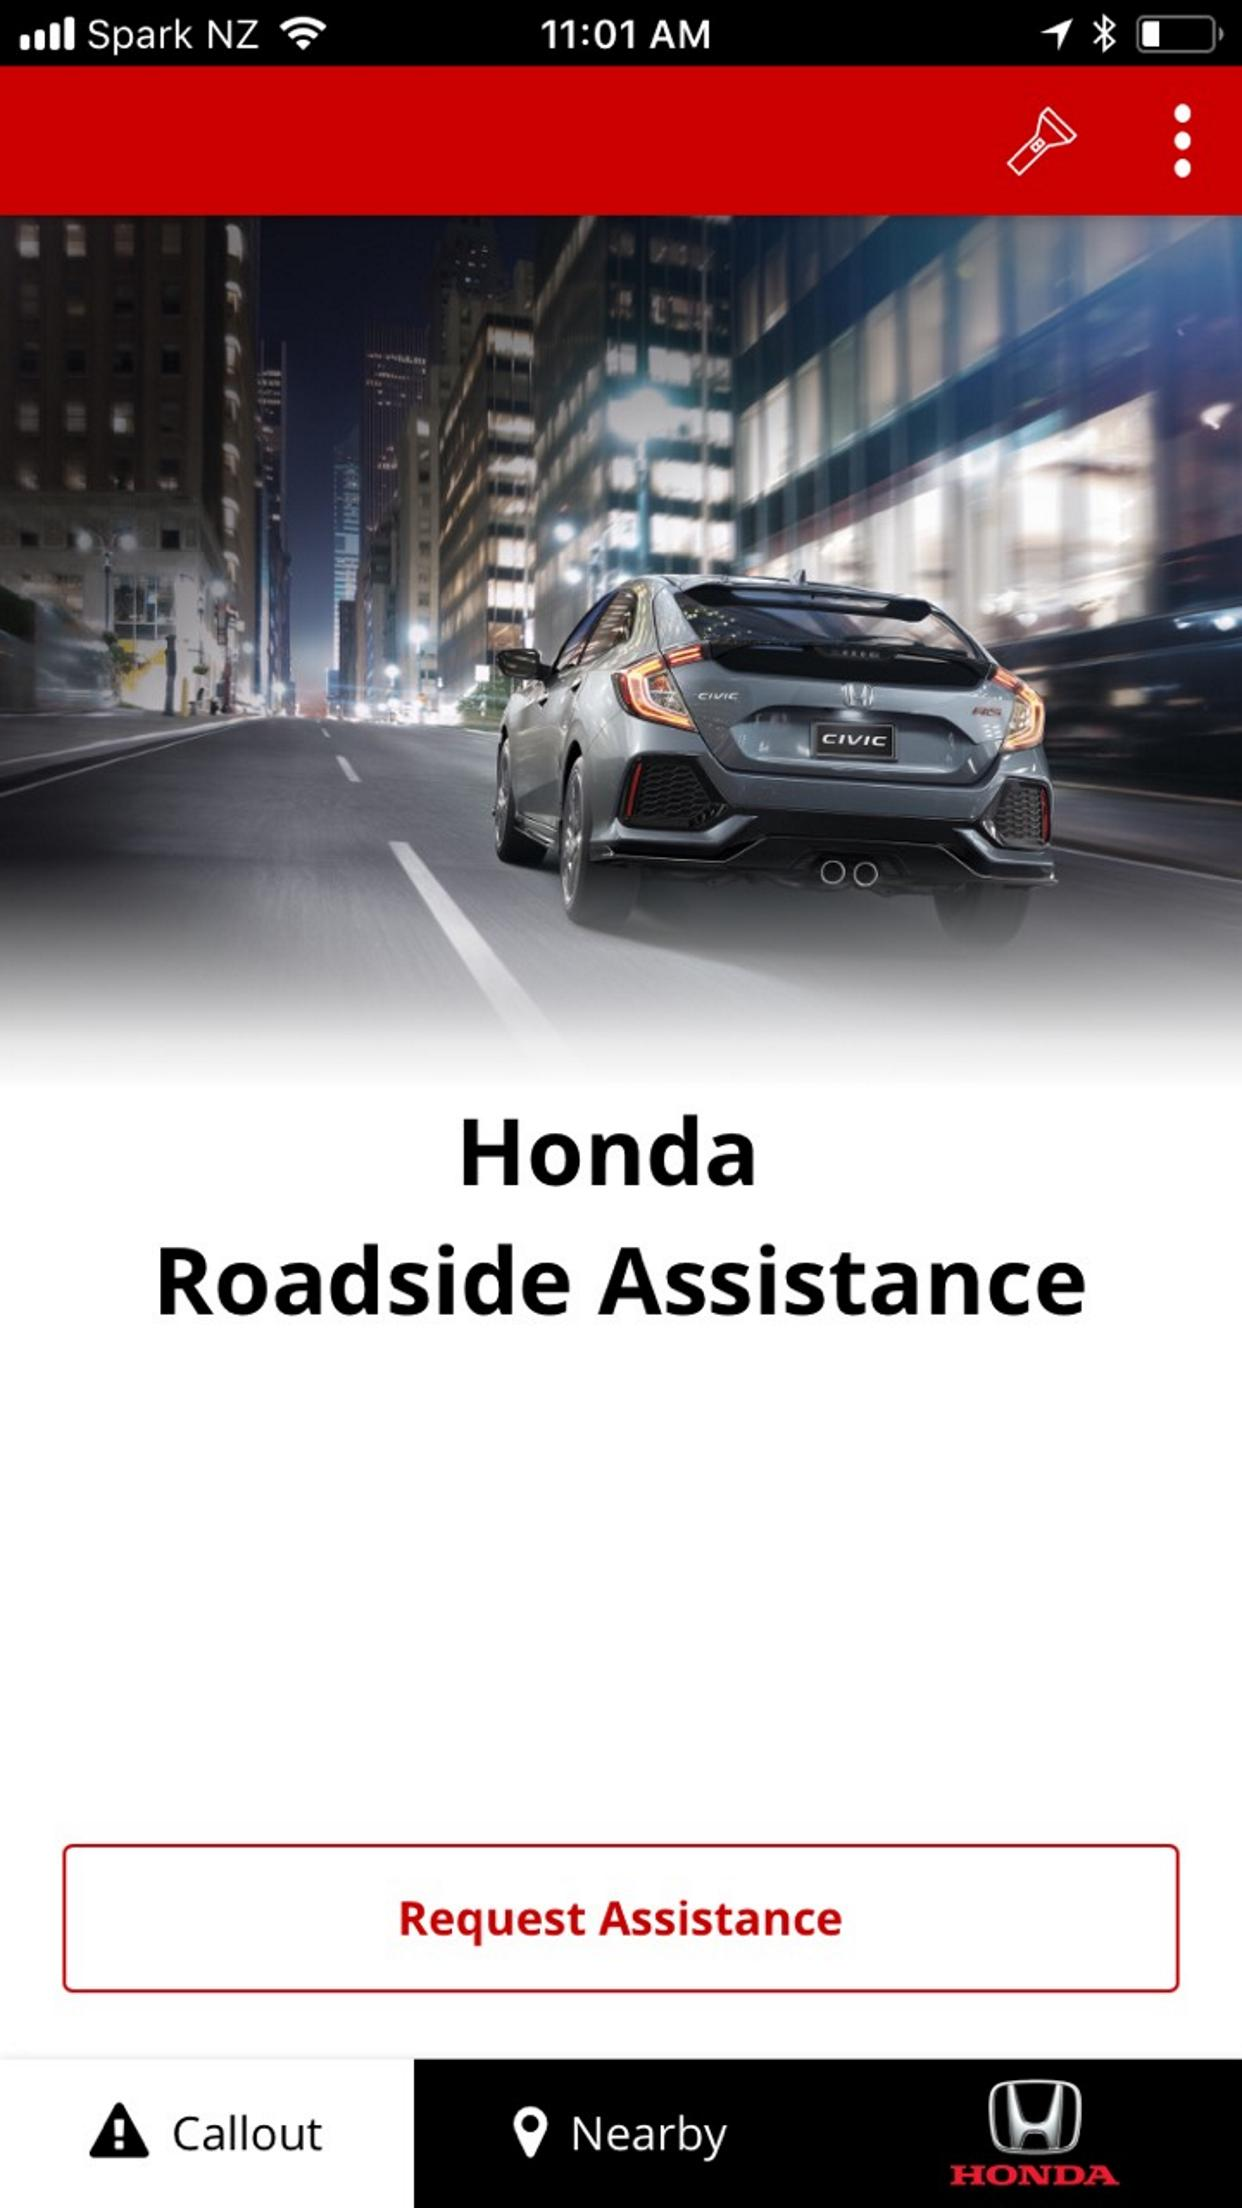 Honda Roadside Assistance >> Honda Roadside Assistance For Android Apk Download